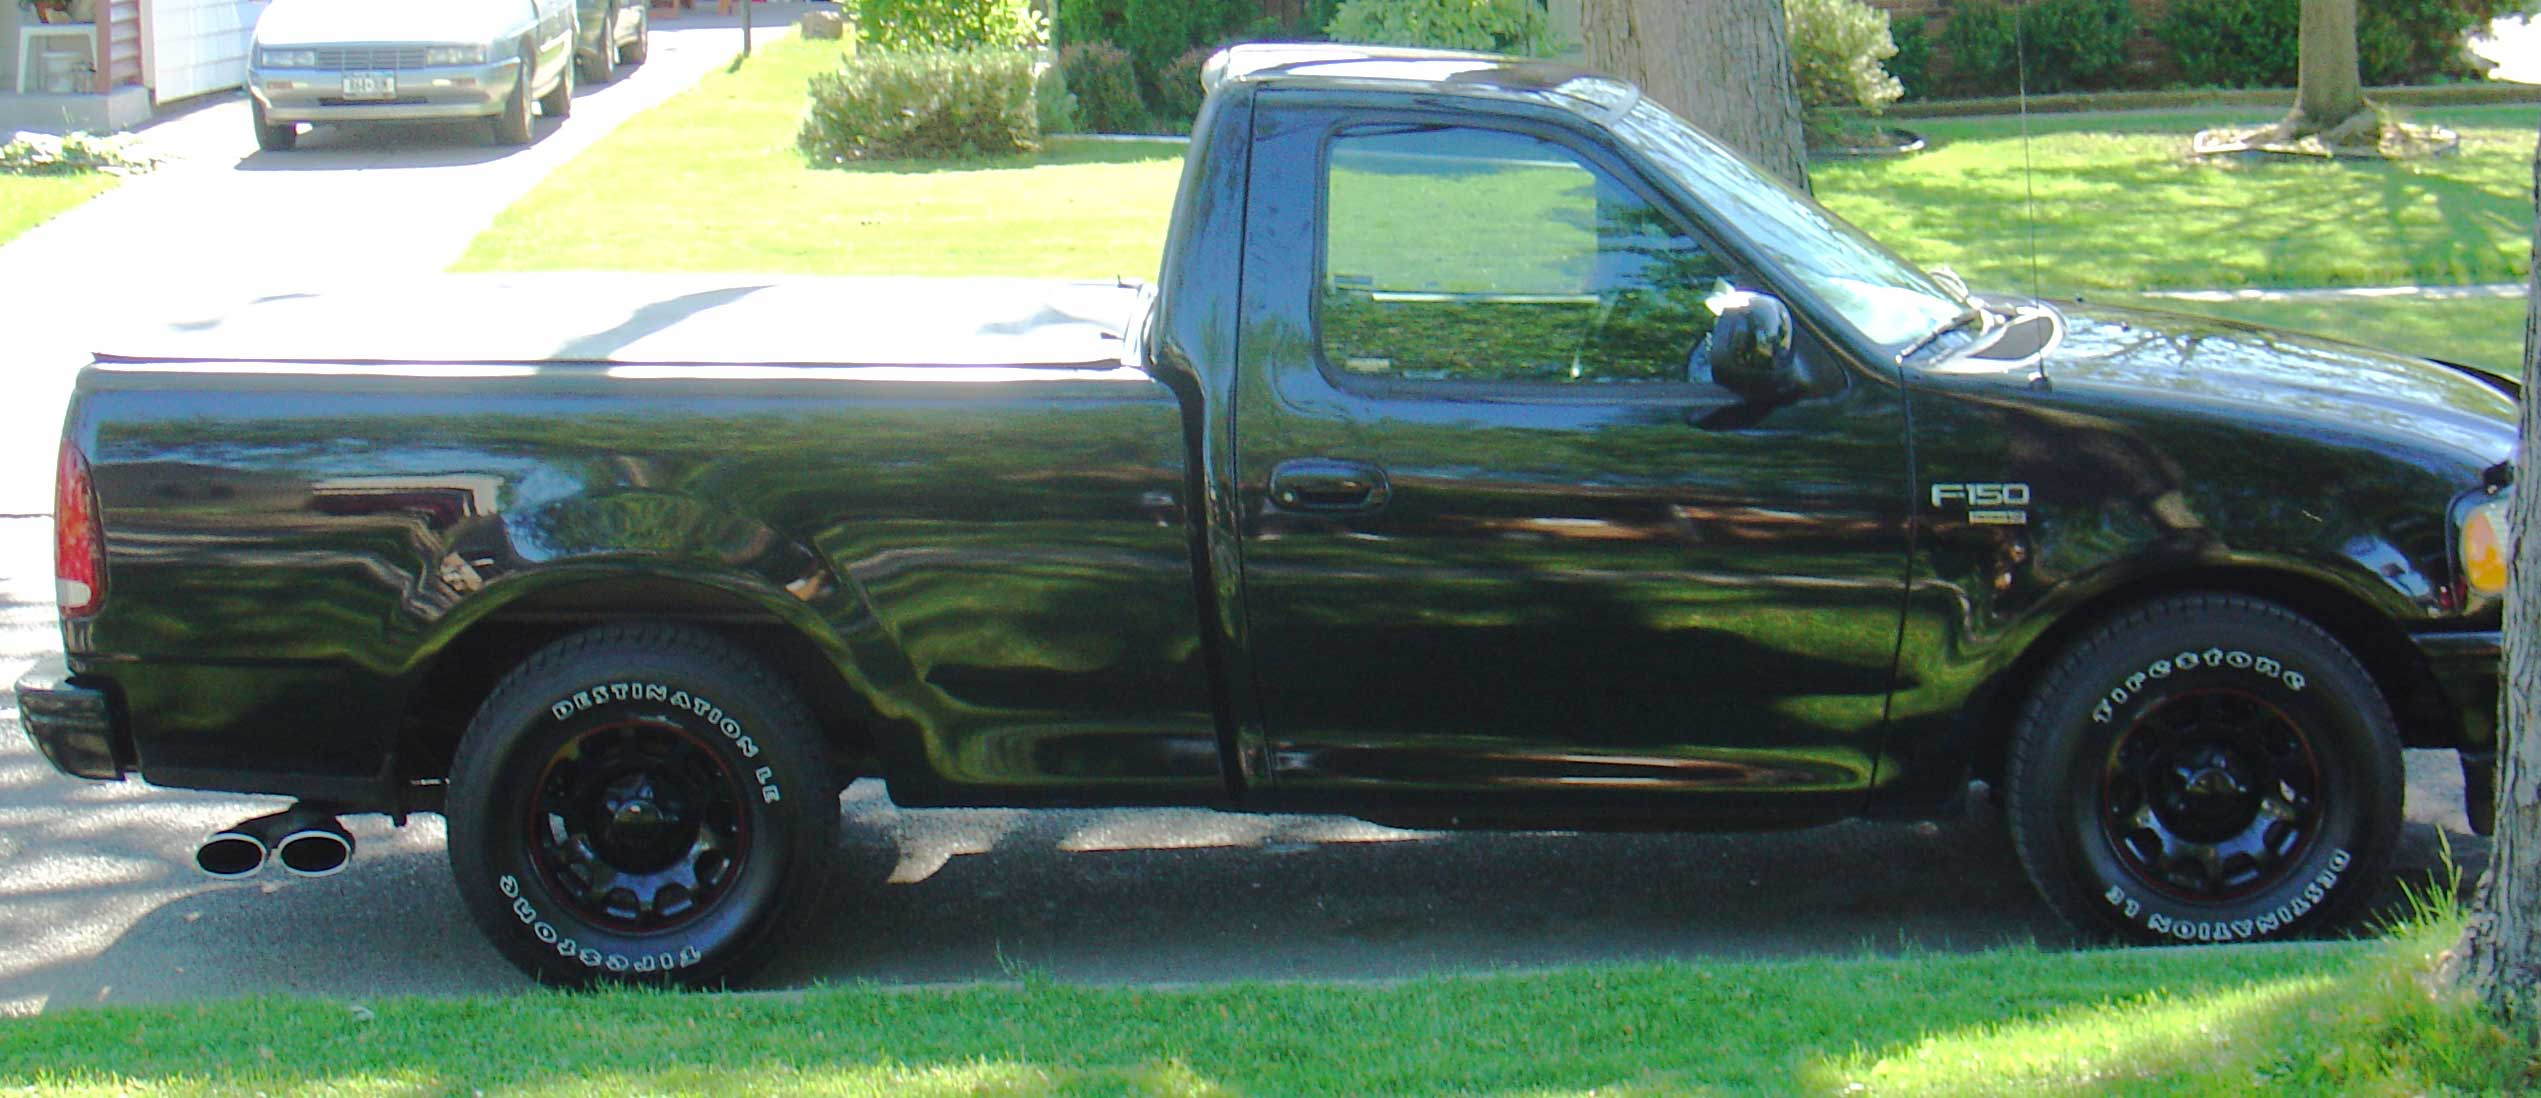 Thread fs 98 roush nascar f150 70k miles nice